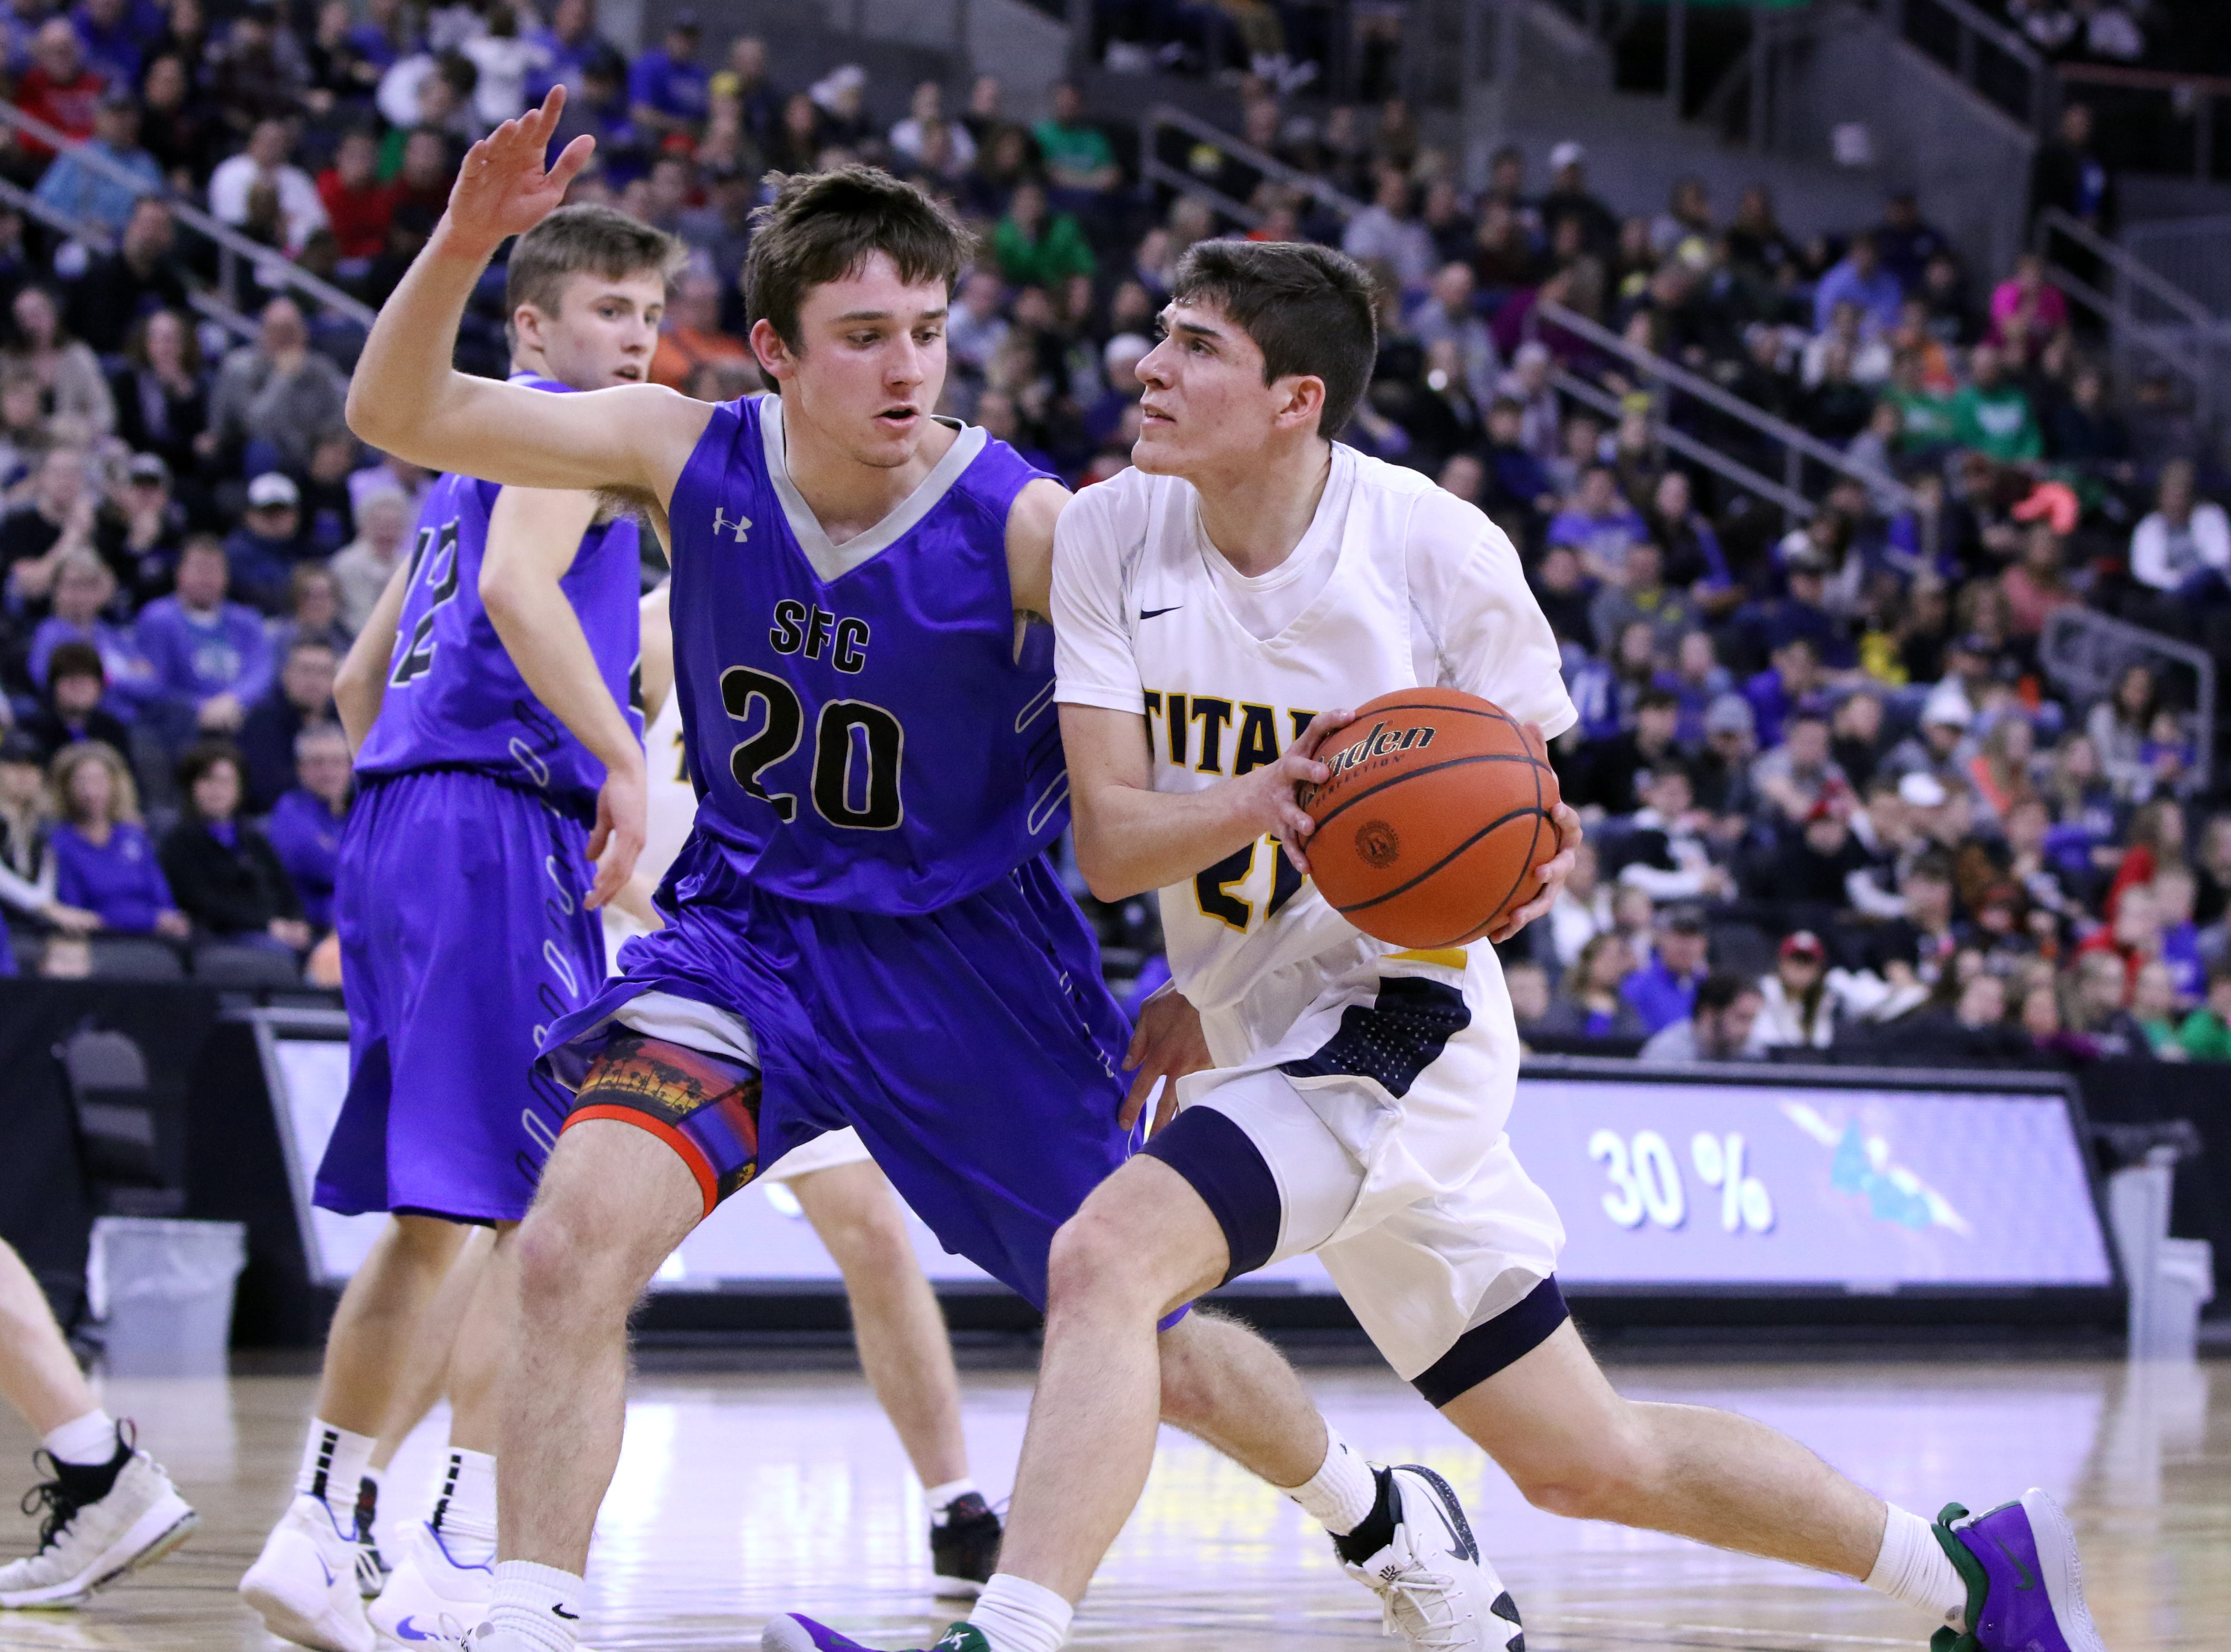 Kade Stearns of Tea Area drives against the defense by Parker Nelson of Sioux Falls Christian during Saturday's Class A title game at the Premier Center.